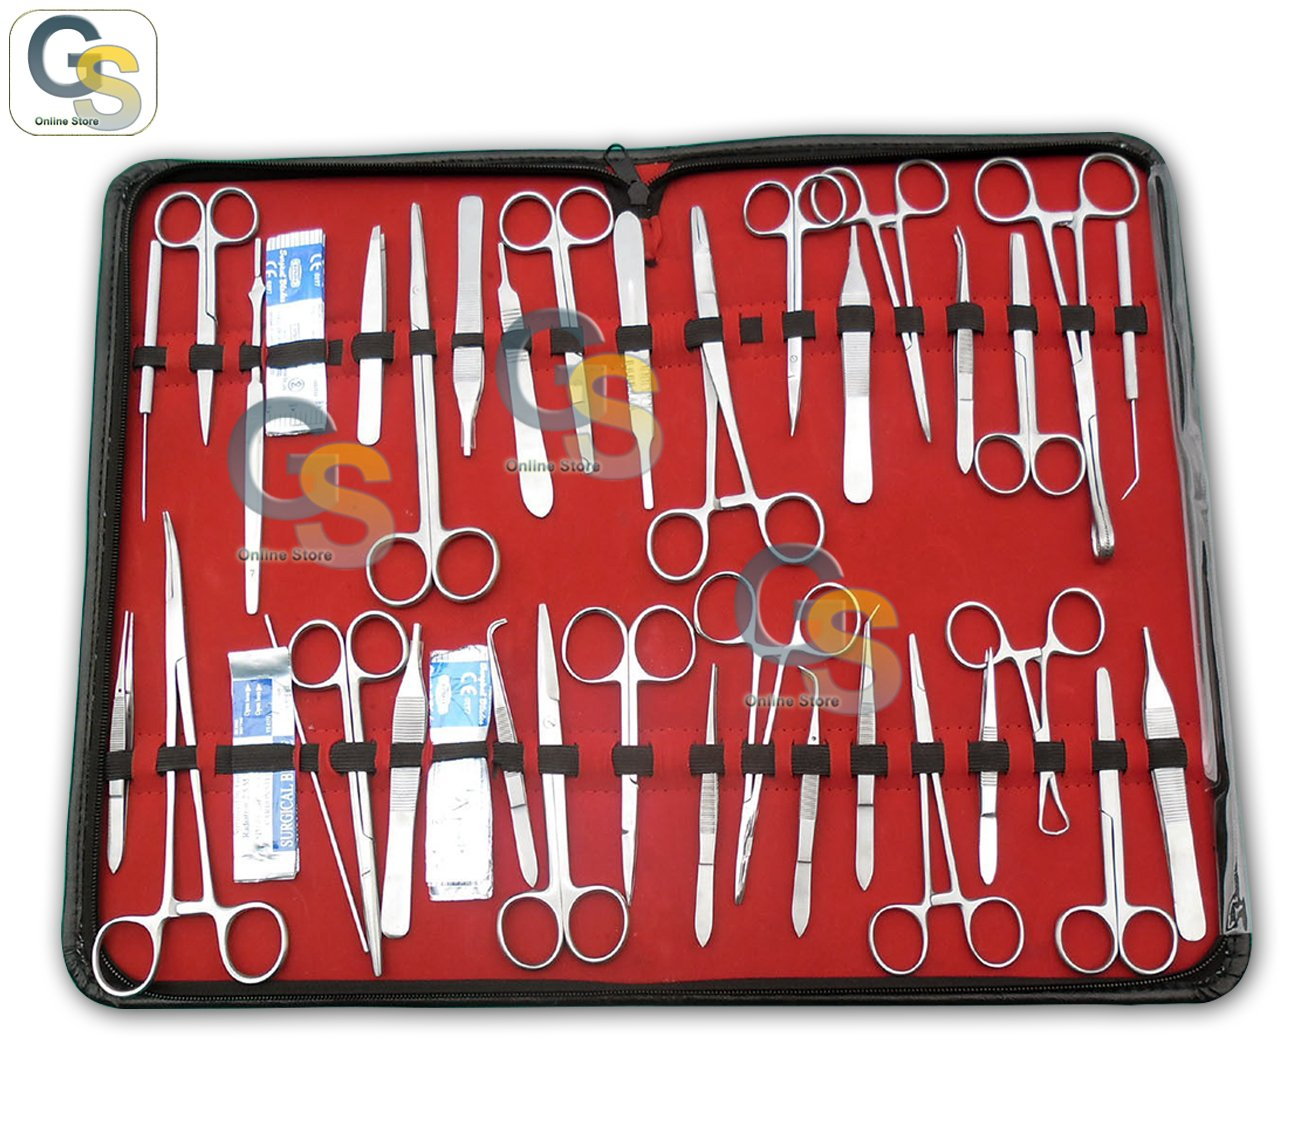 G.S 96 PC US MILITARY FIELD VETERINARY DENTAL INSTRUMENT KIT by G.S SURGICAL